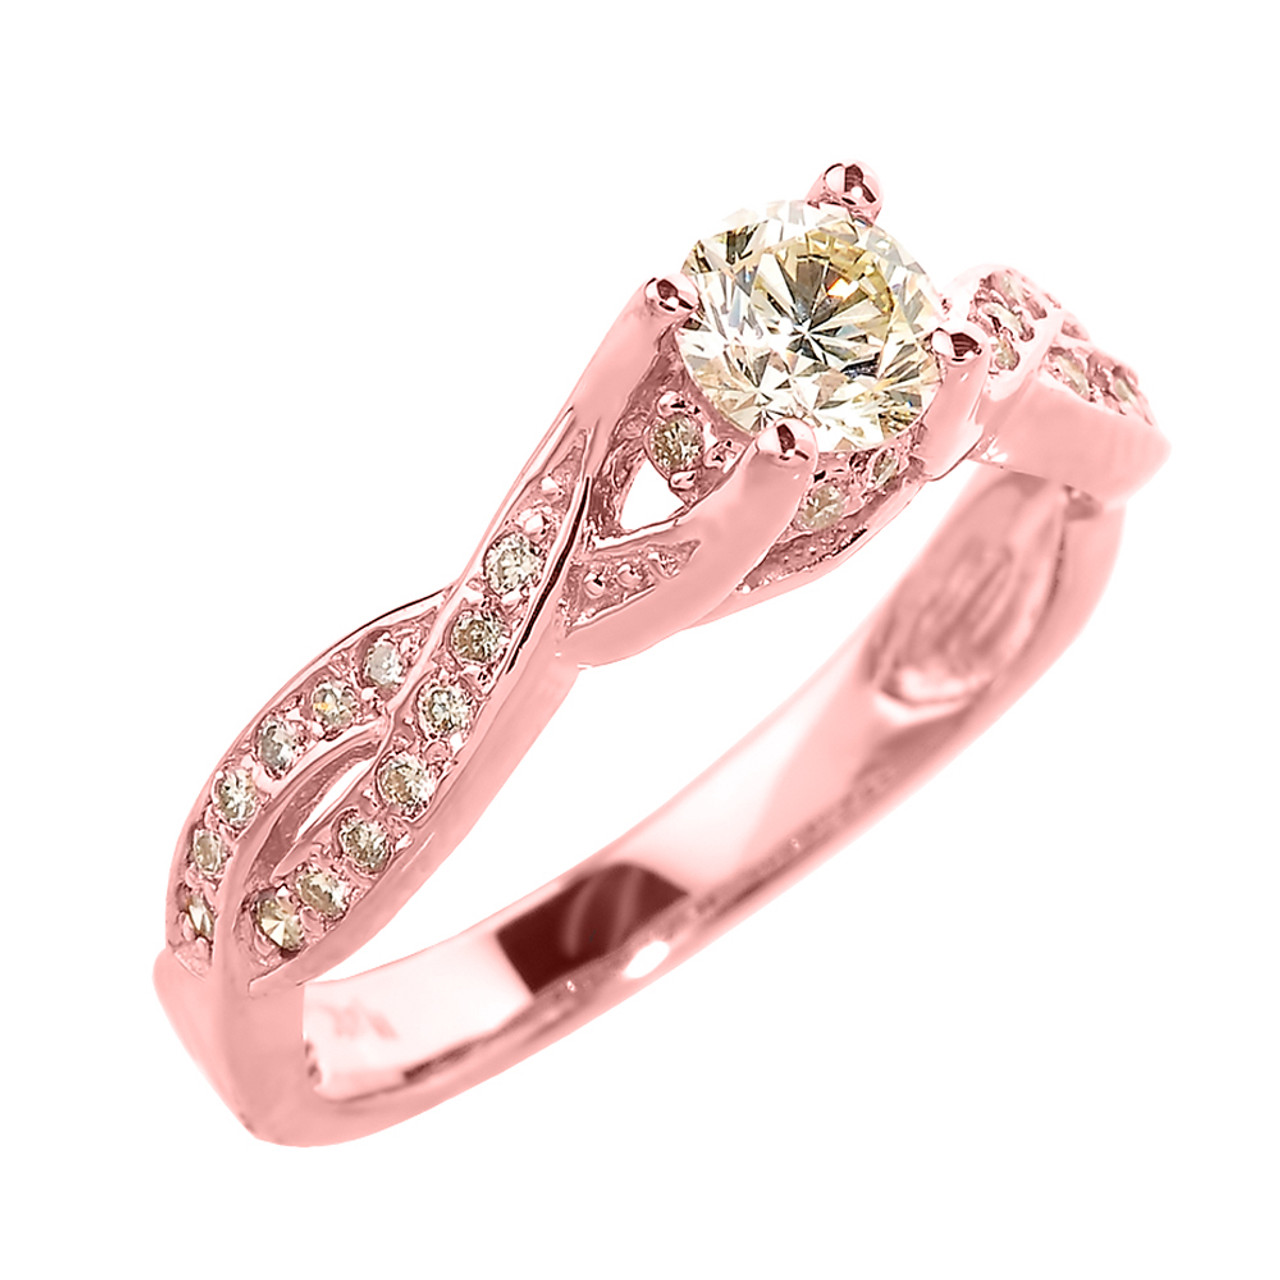 rose nl hand engraved jewelry rg in mens band gold infinity wedding design